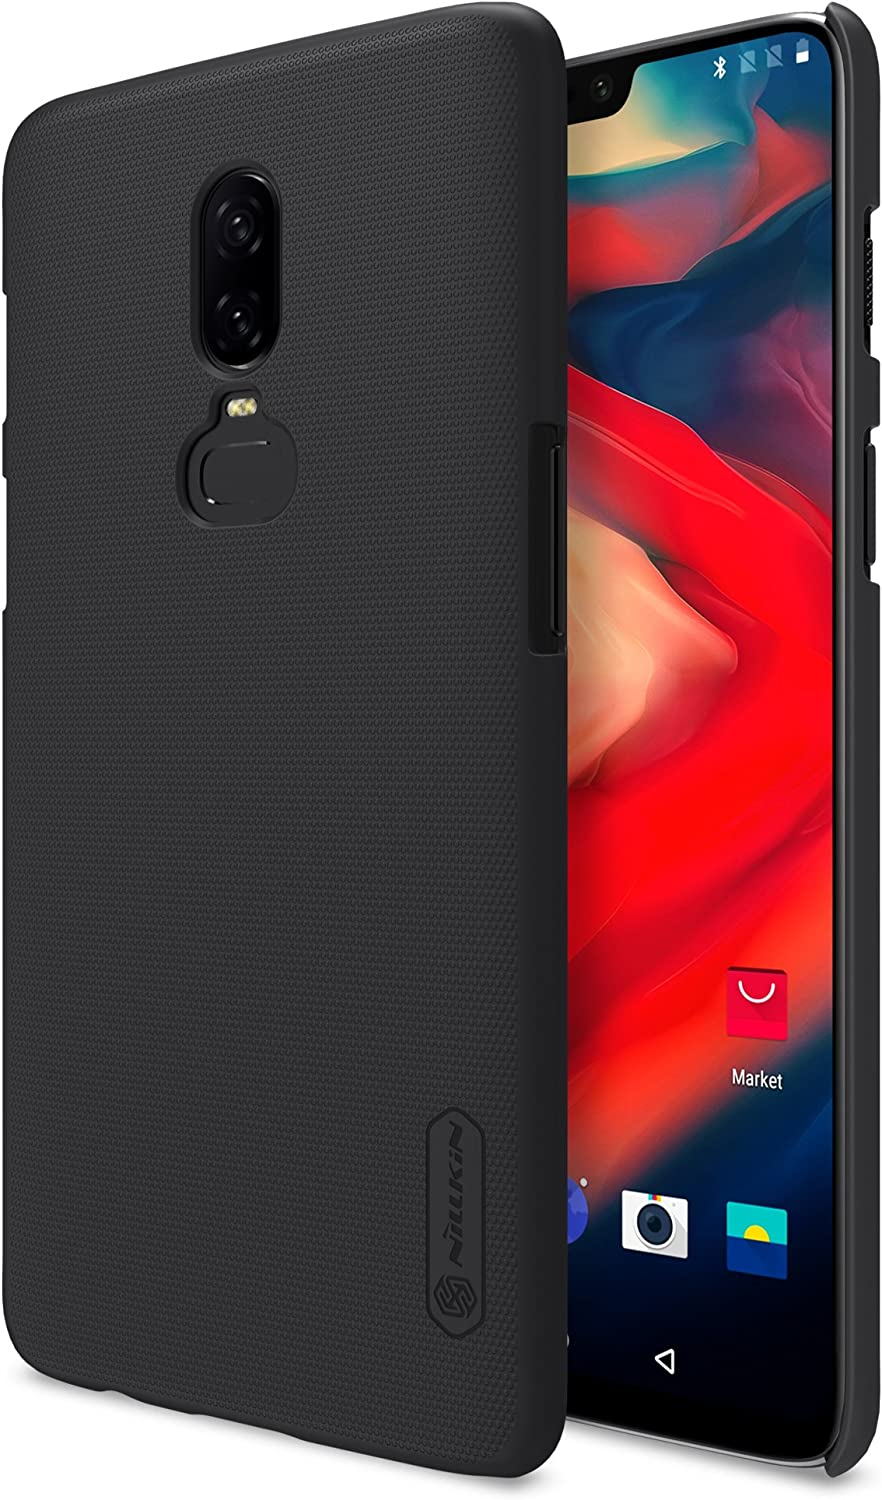 Oneplus 6 Case,Nillkkin [with Kickstand] Frosted Shield Anti Fingerprints Hard PC Case Back Cover for Oneplus 6-Retail Package (Black)